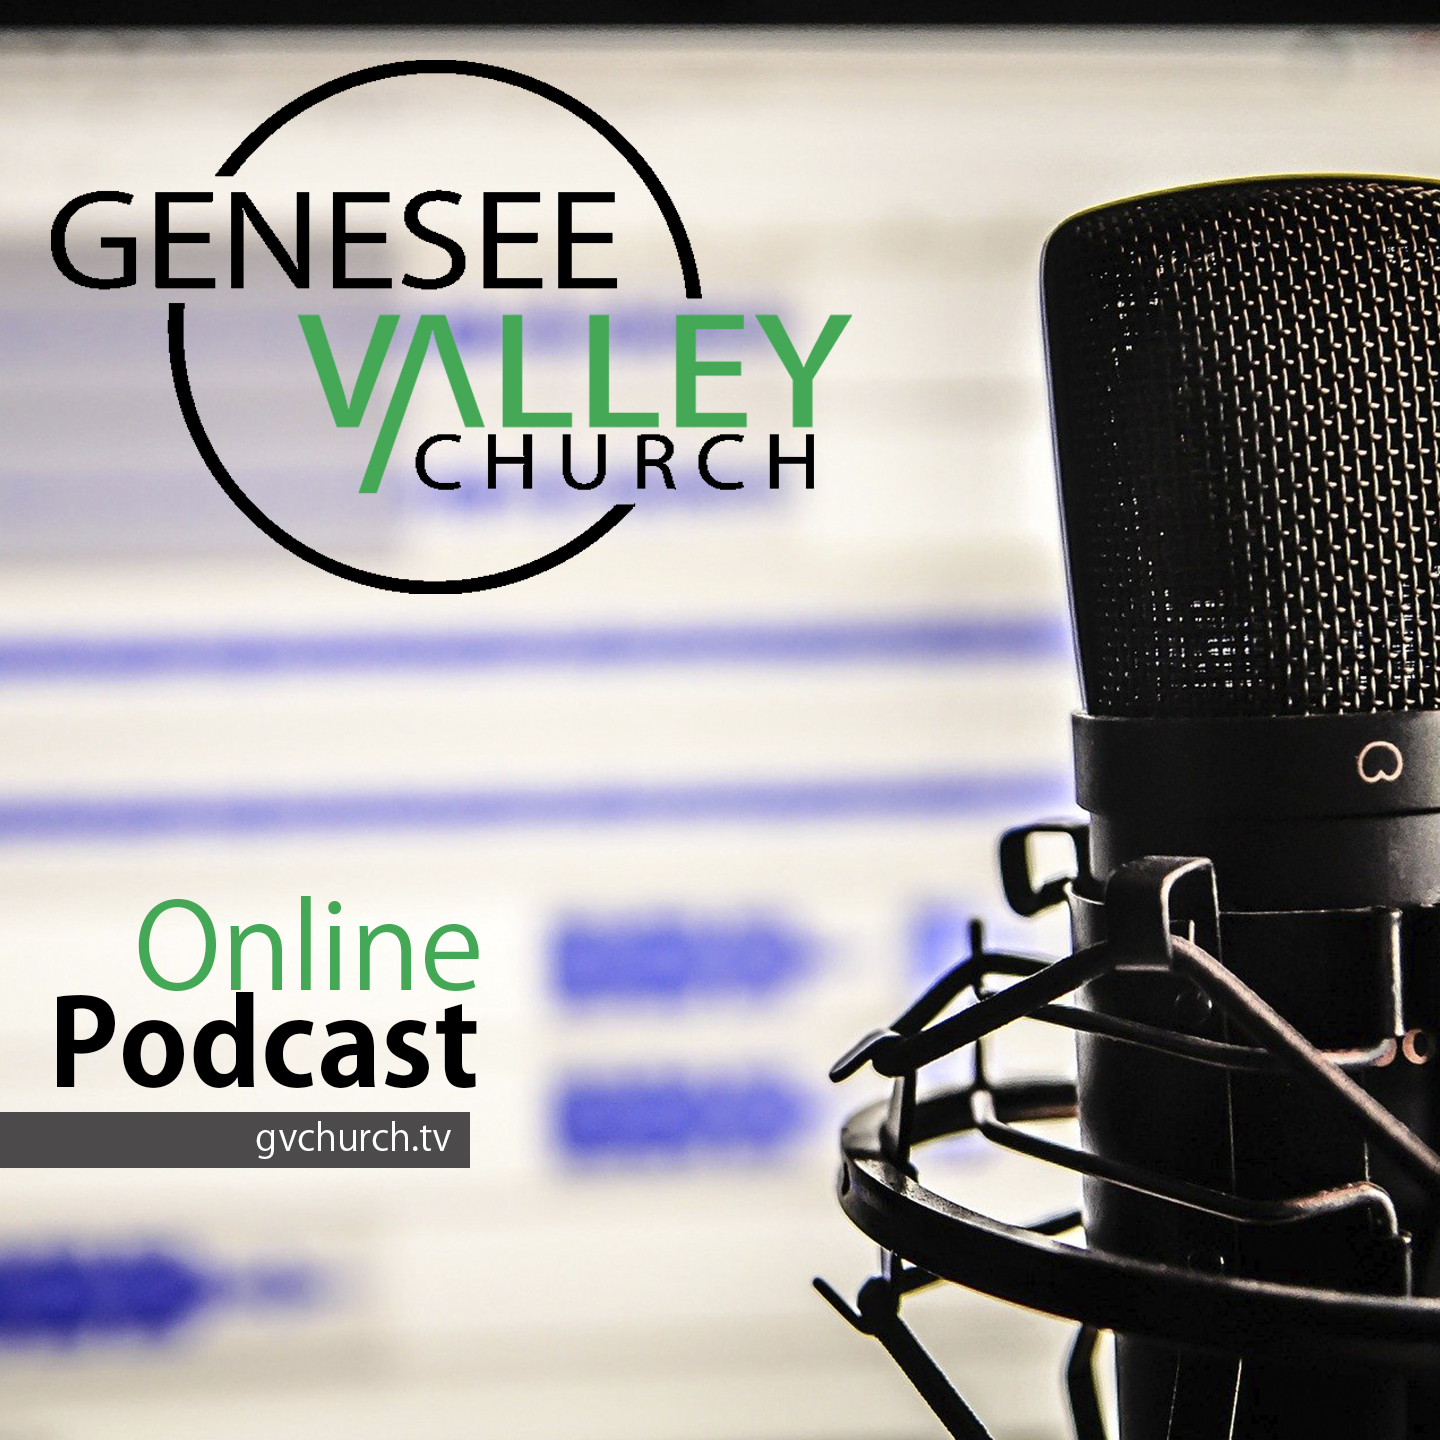 Genesee Valley Church